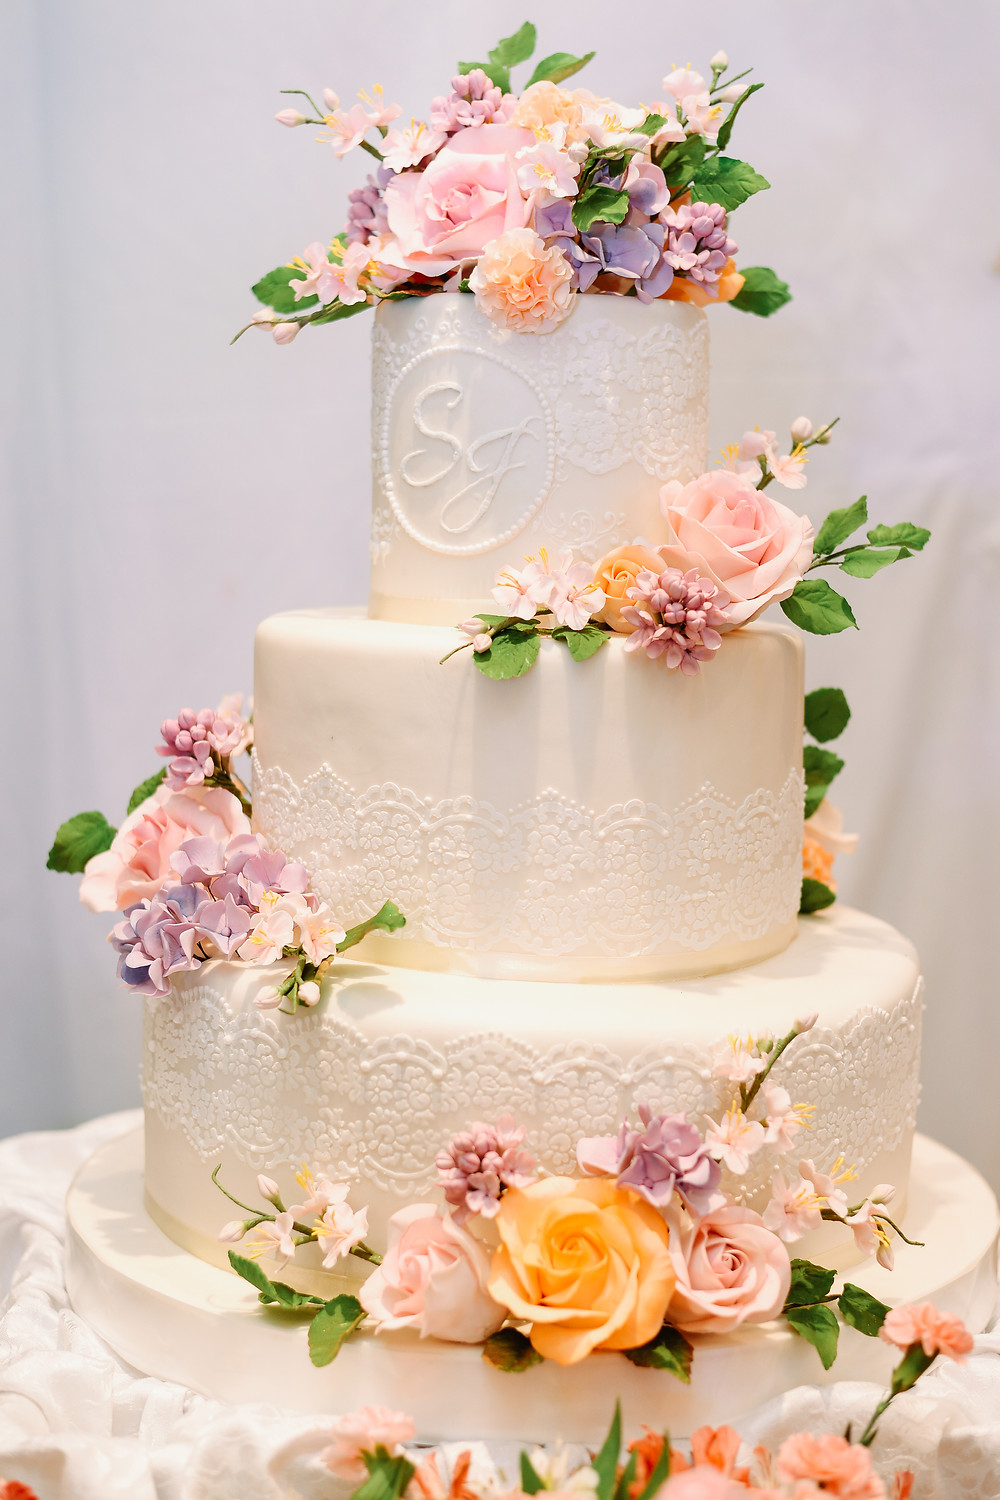 Jam's Stenciled Lace Cake